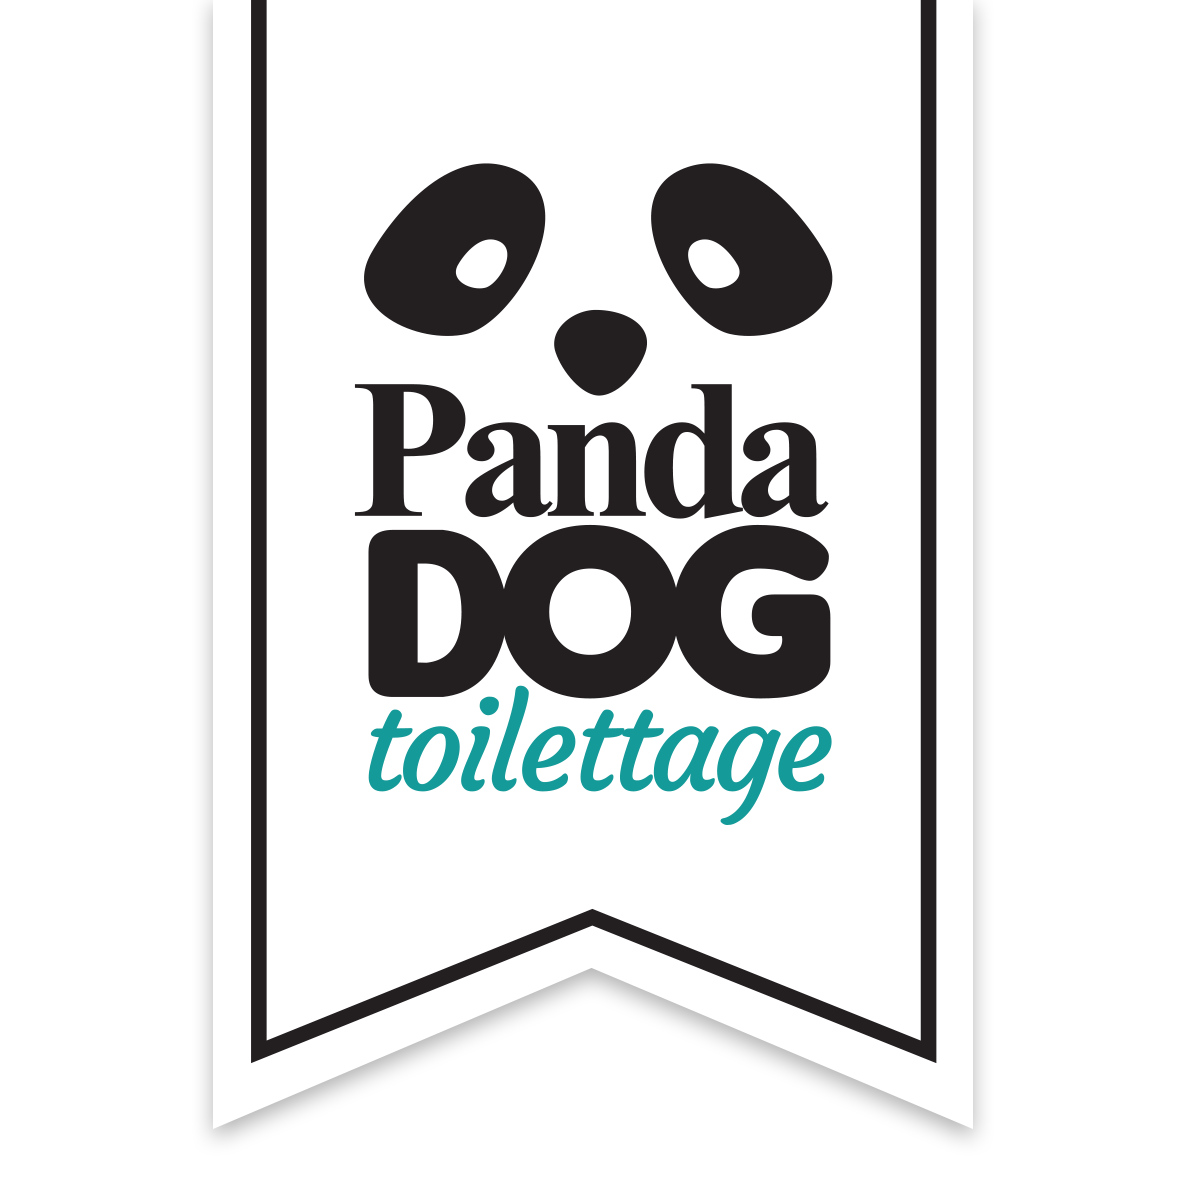 Panda Dog Toilettage